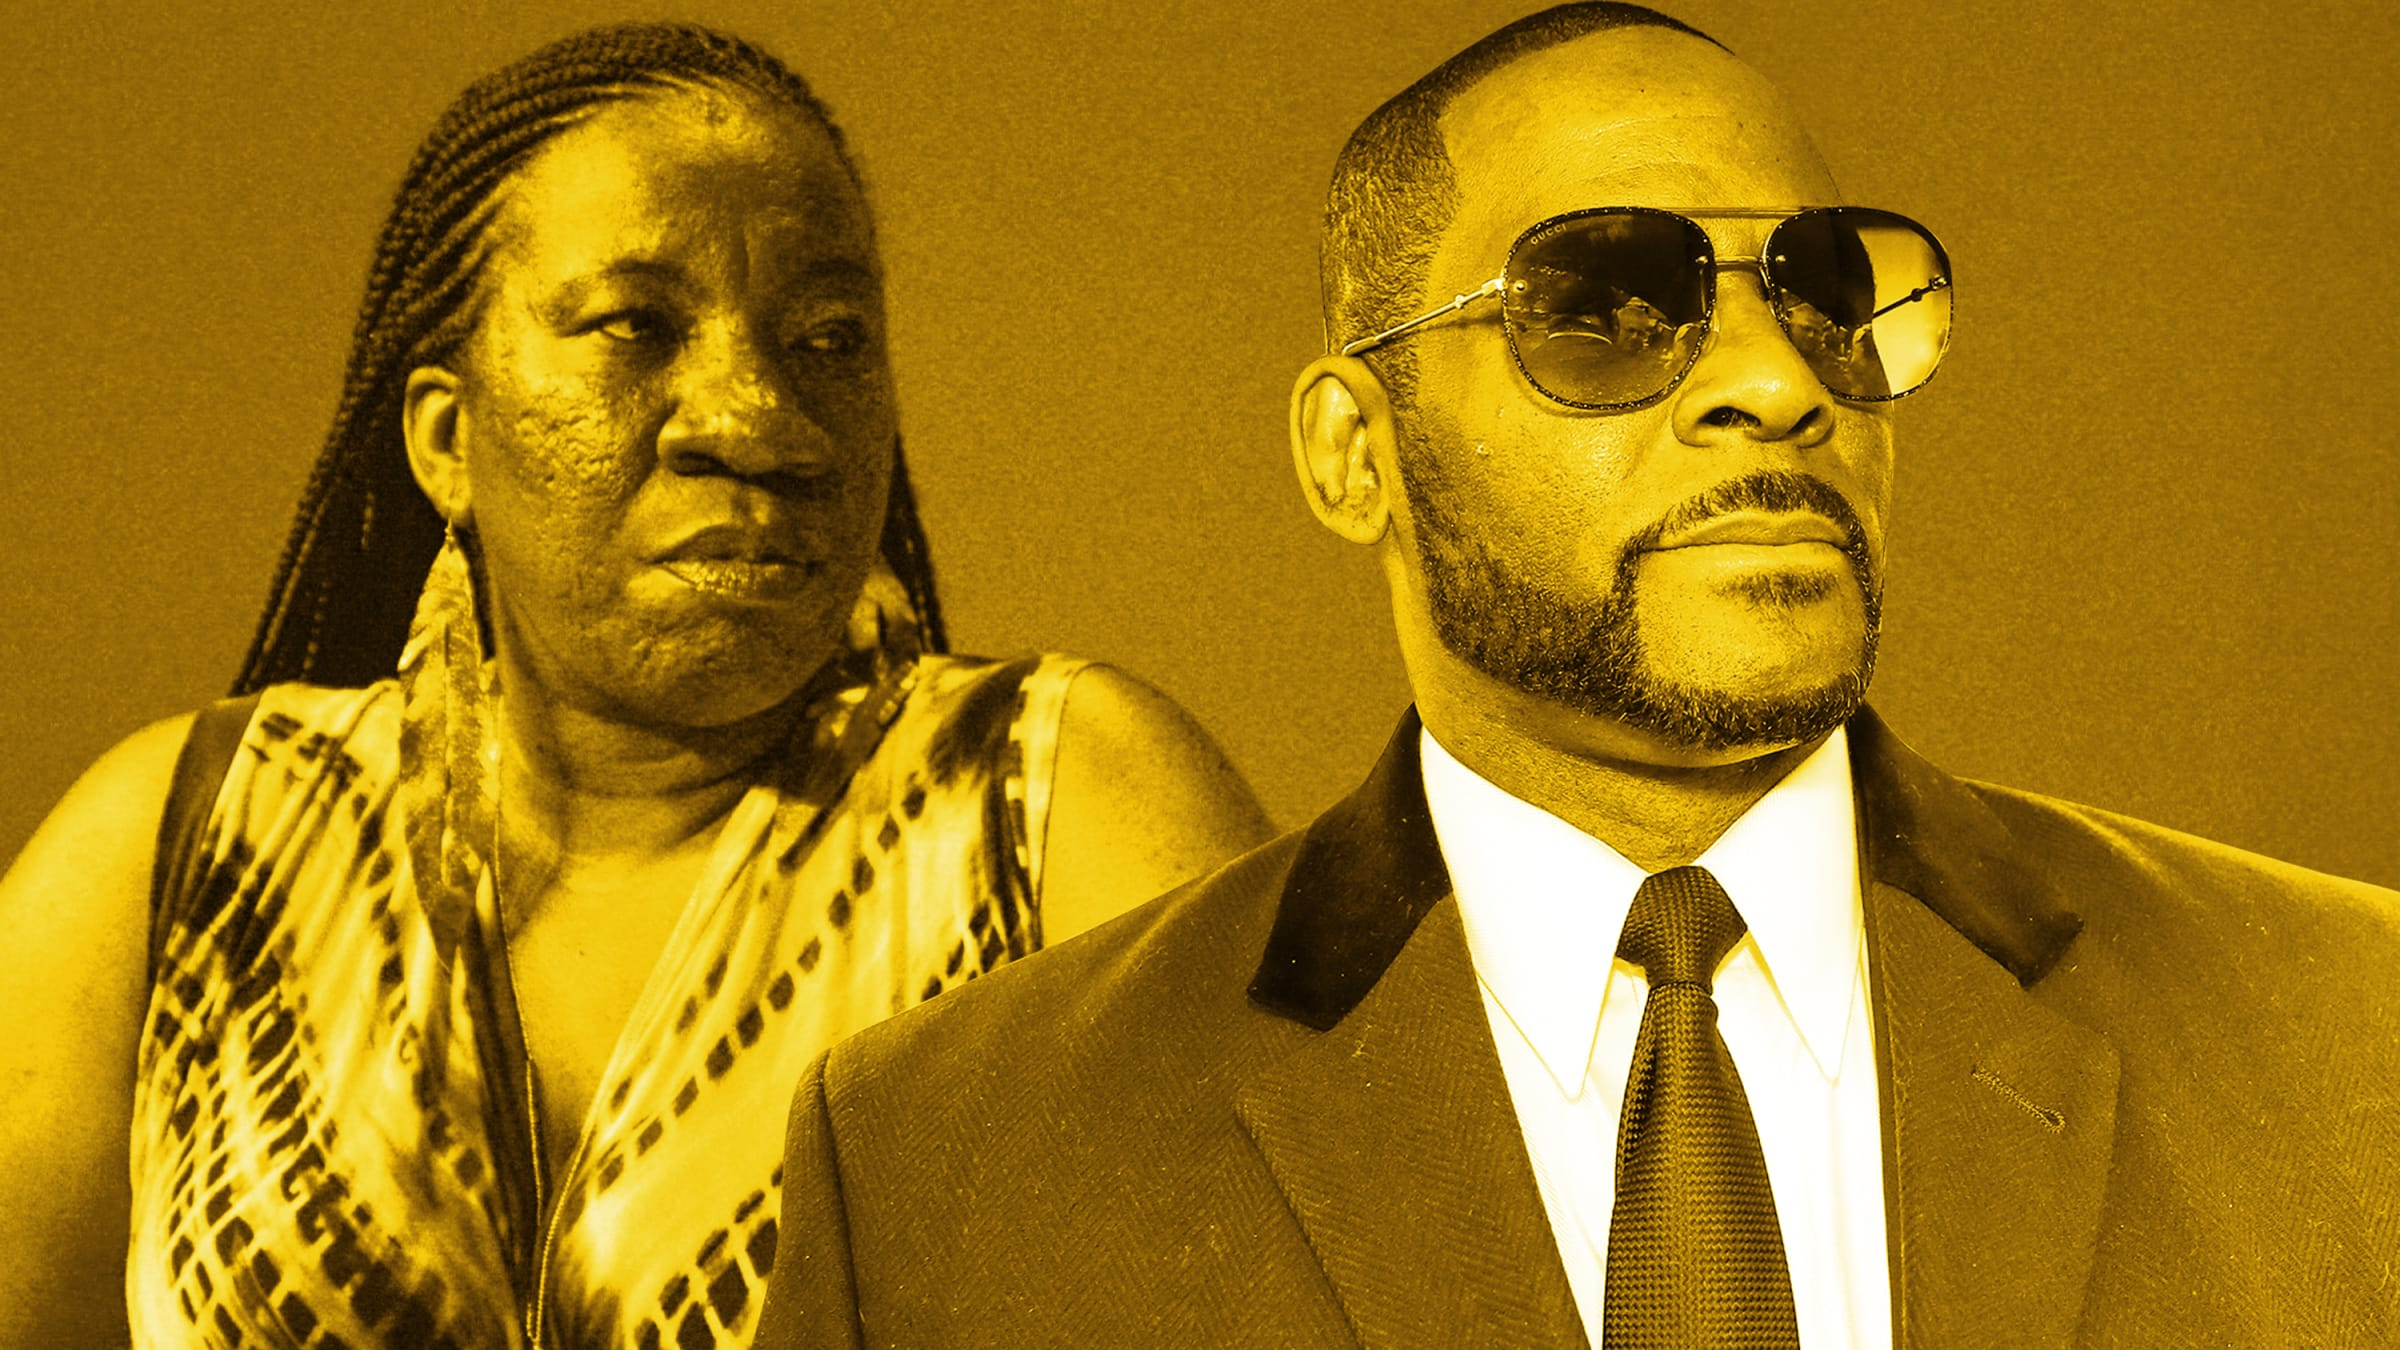 #MeToo Founder Tarana Burke Calls Out Hollywood's R. Kelly Silence: 'We Still Have to Fight'